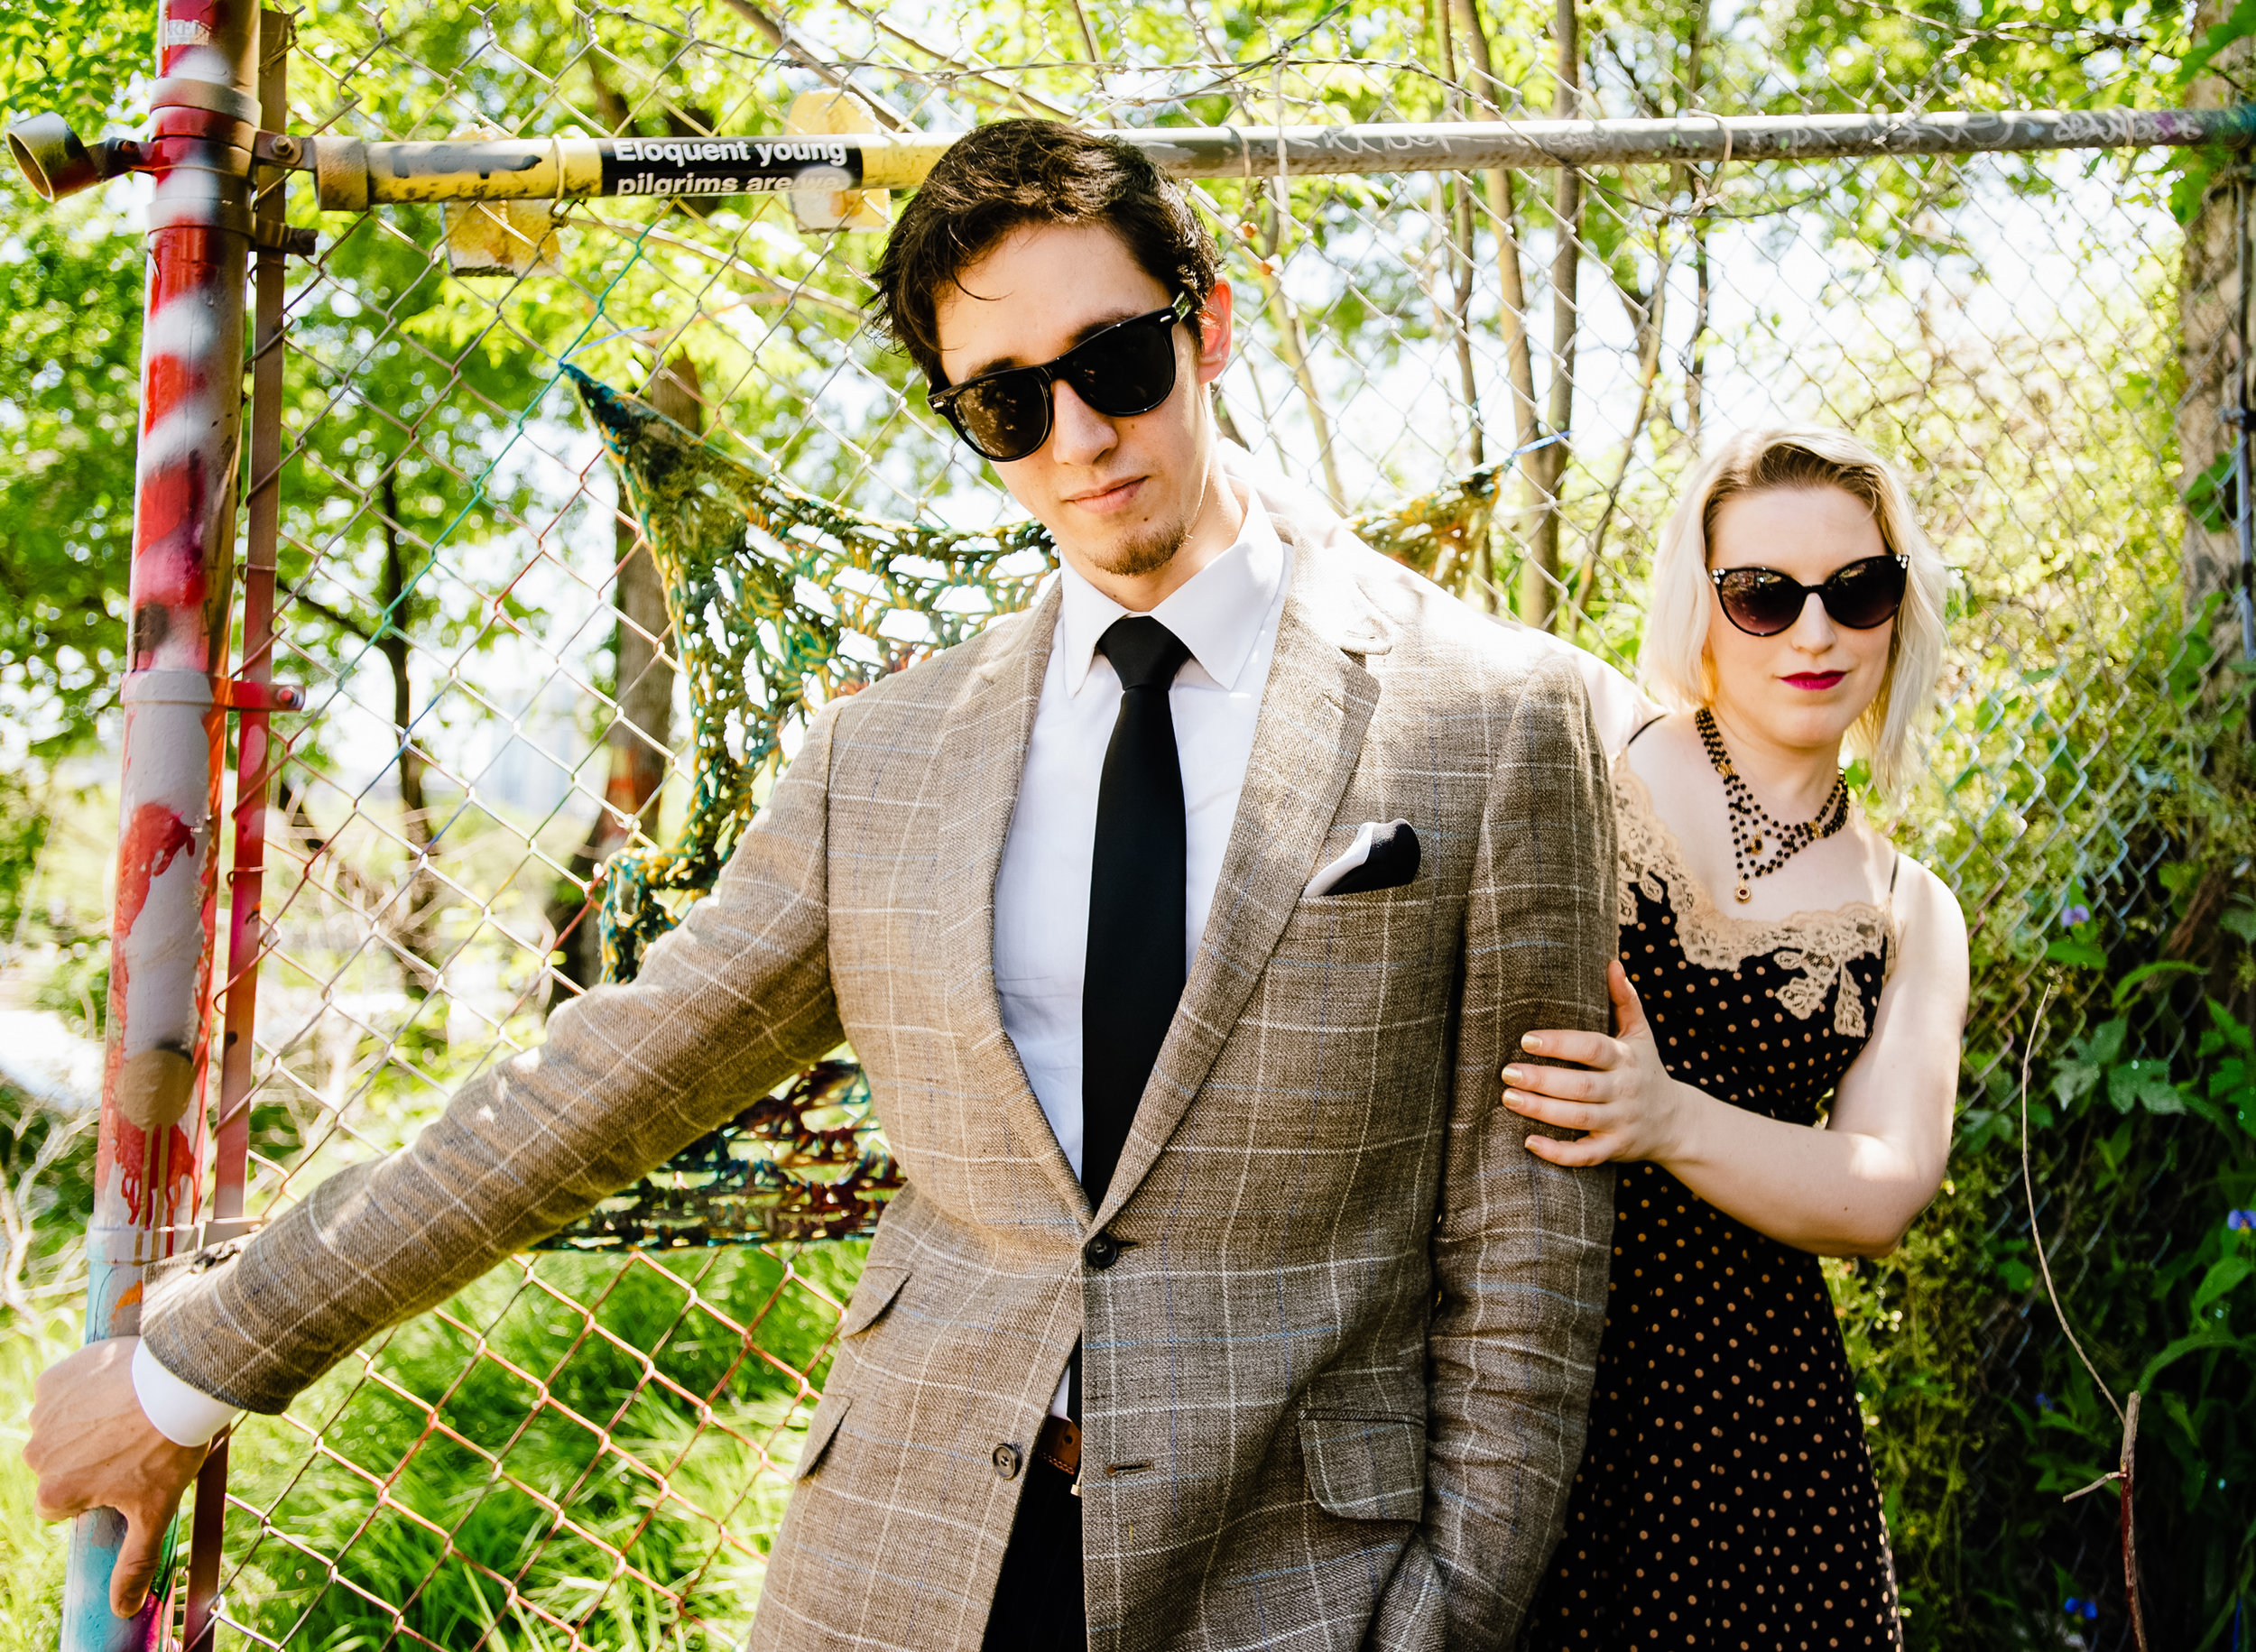 Mike-and-Ruth-cool-sunglasses-pic.jpg